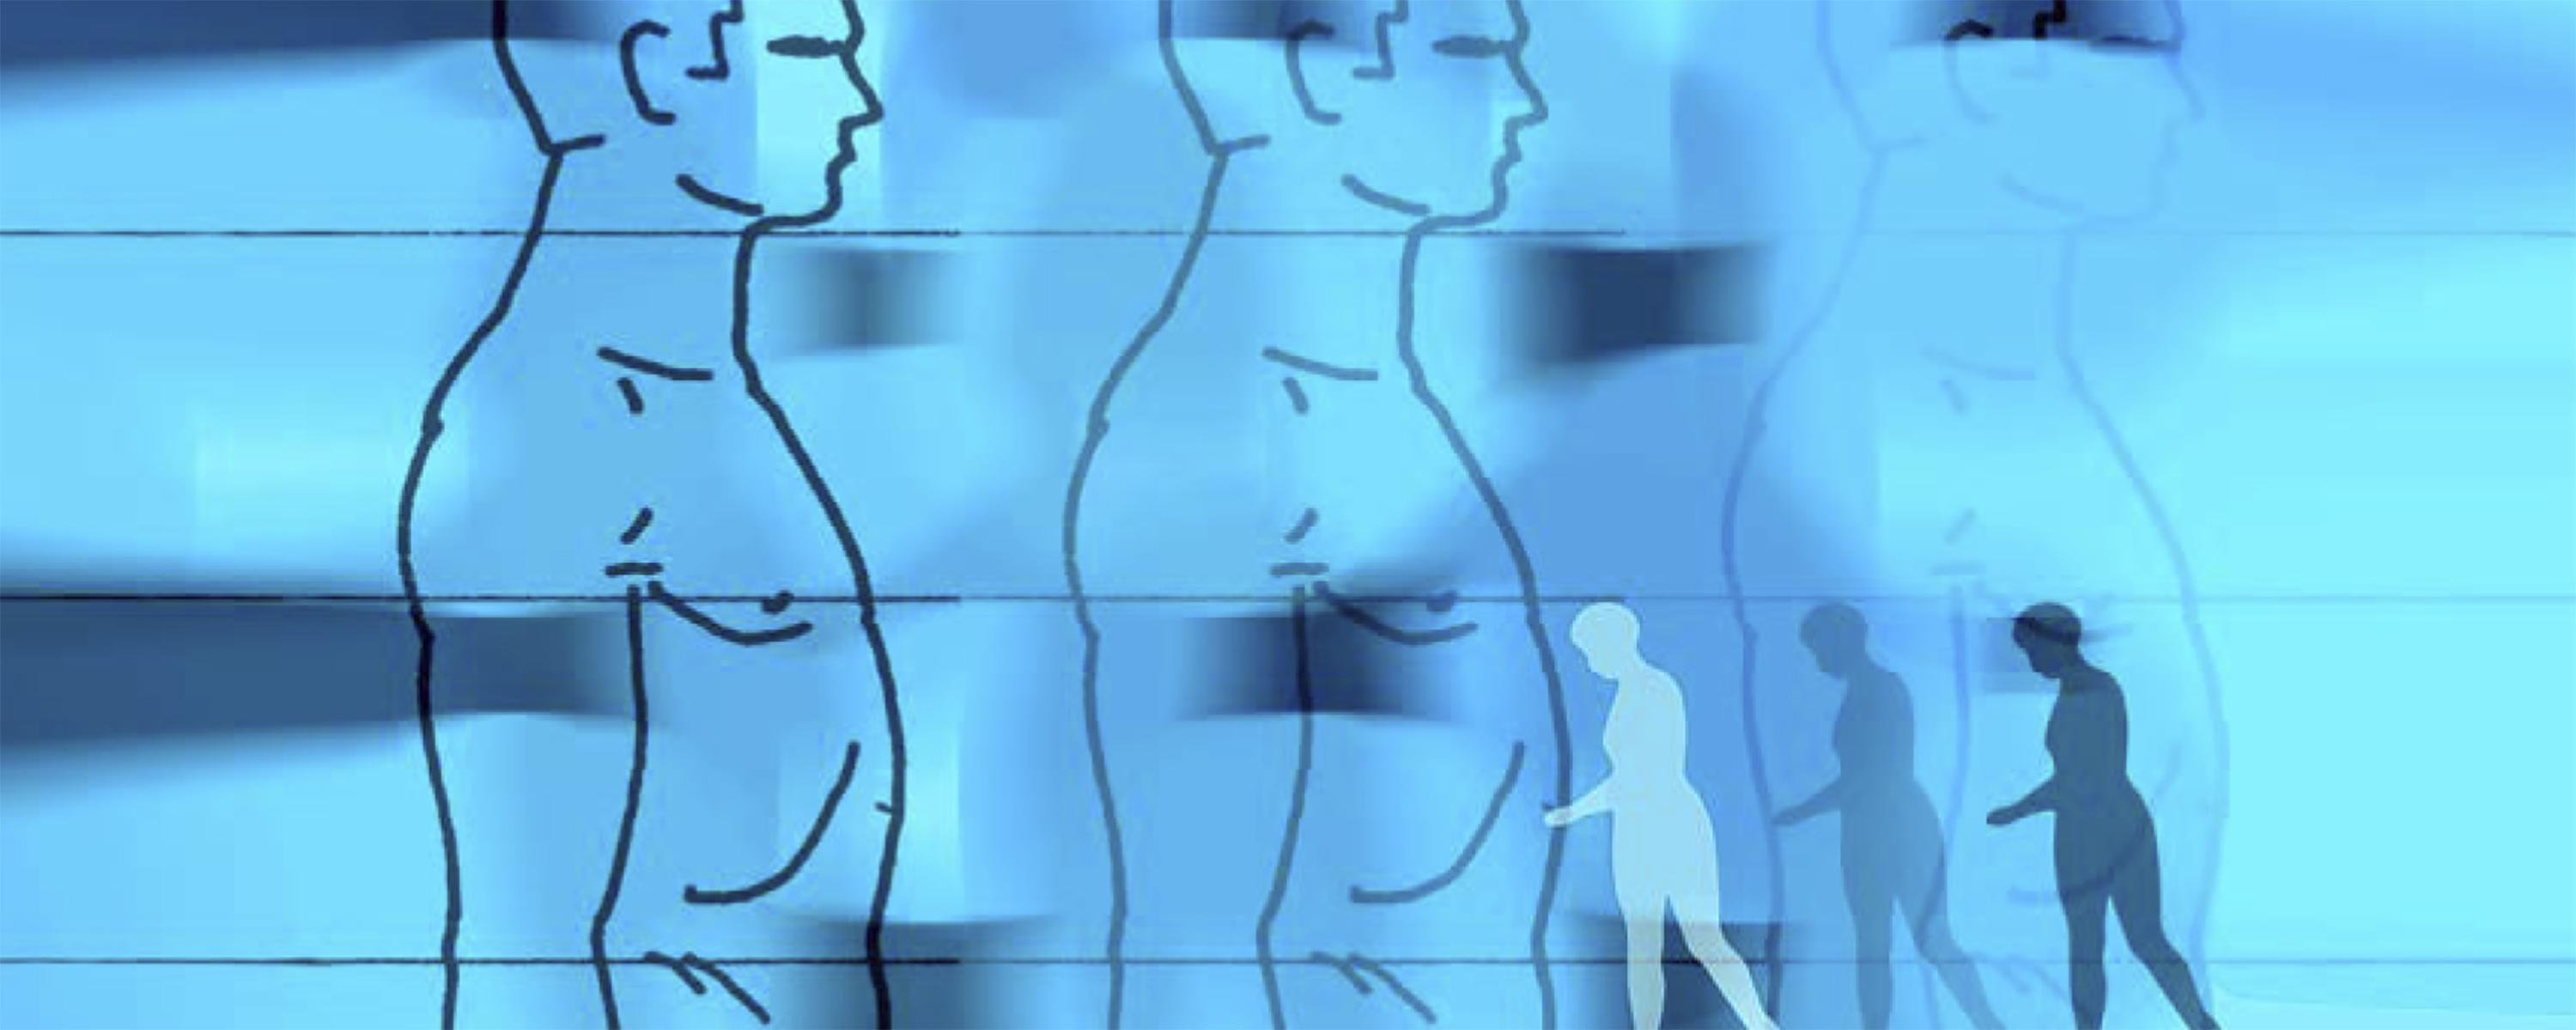 Illustrative Photos Of Human Body Outlines For Community And Behavioral  Health